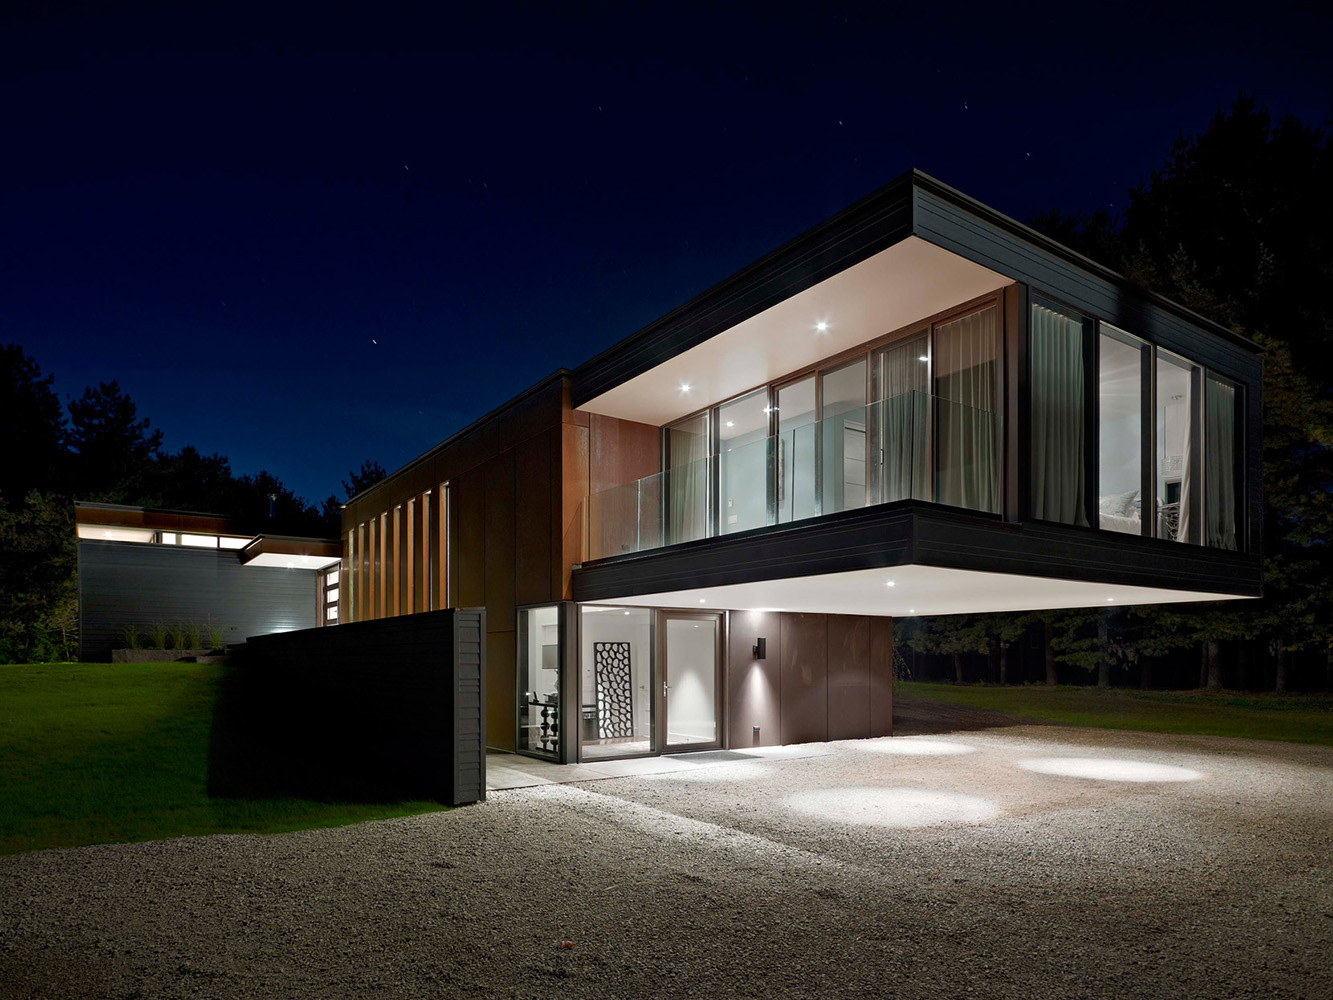 Contemporary Collingwood home with Self-Weathering Steel Corten siding and large Master bedroom cantilever